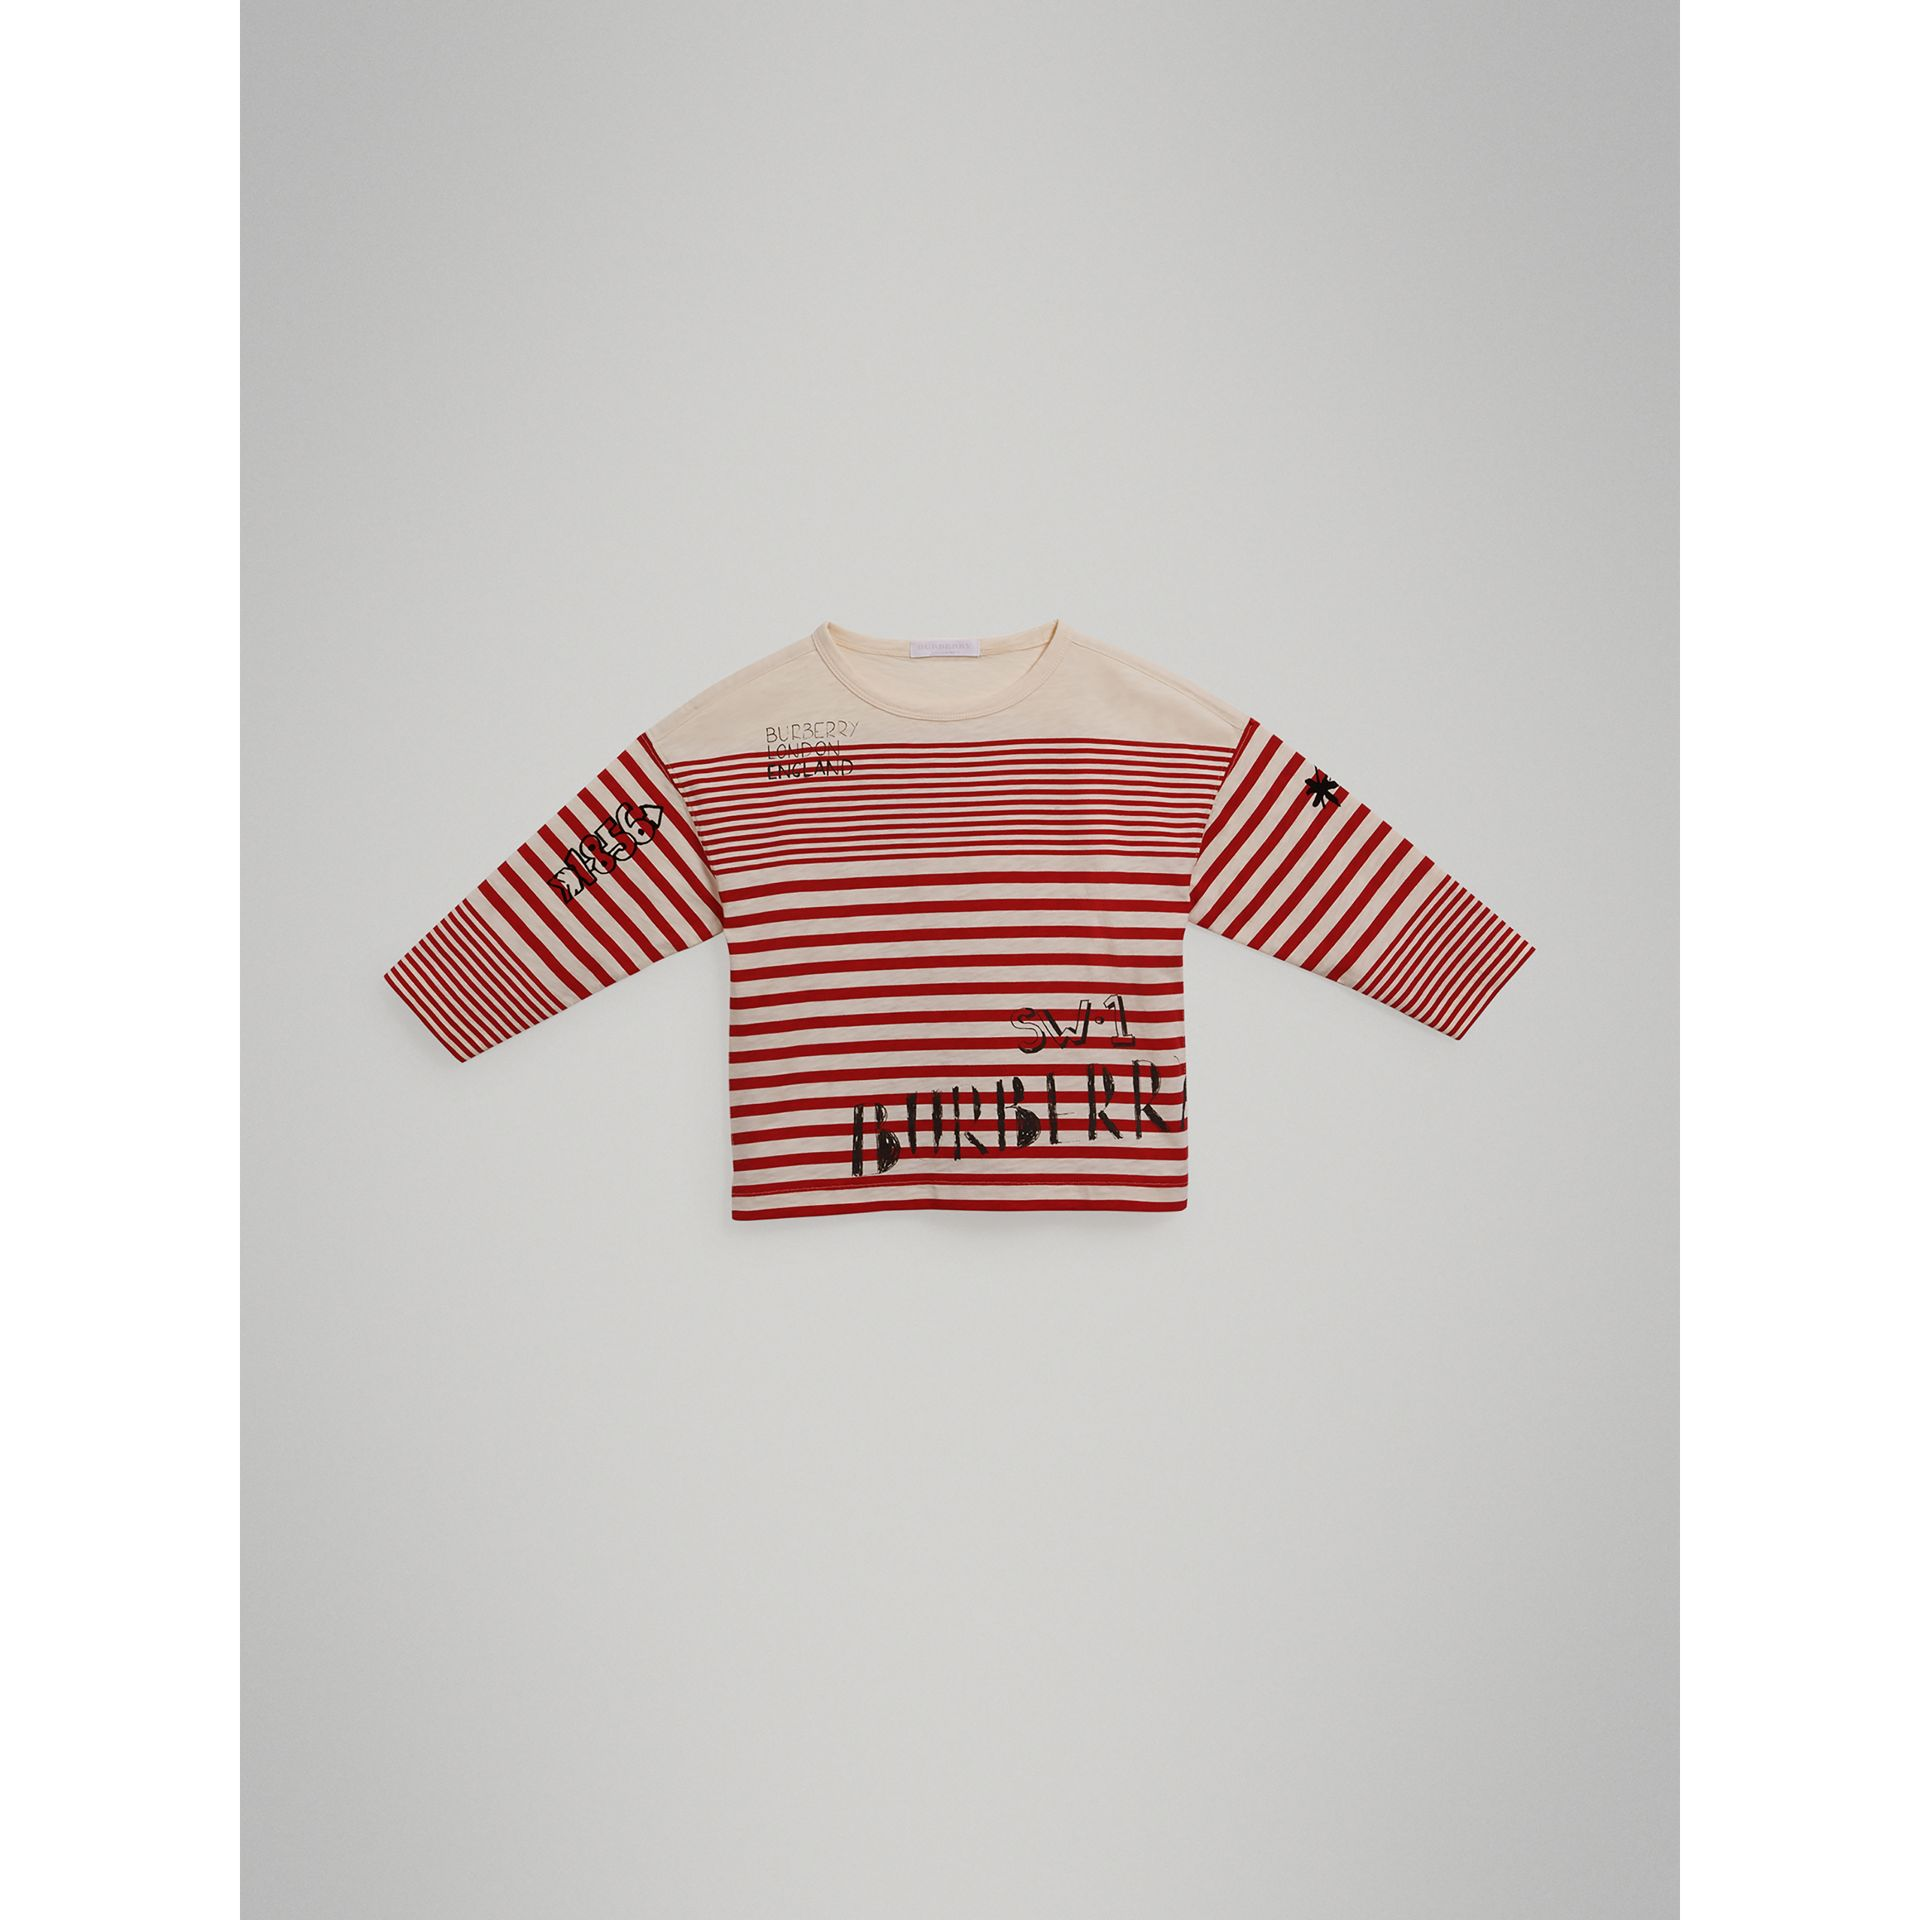 SW1 Print Striped Cotton Top in Bright Red/natural White - Boy | Burberry Canada - gallery image 2